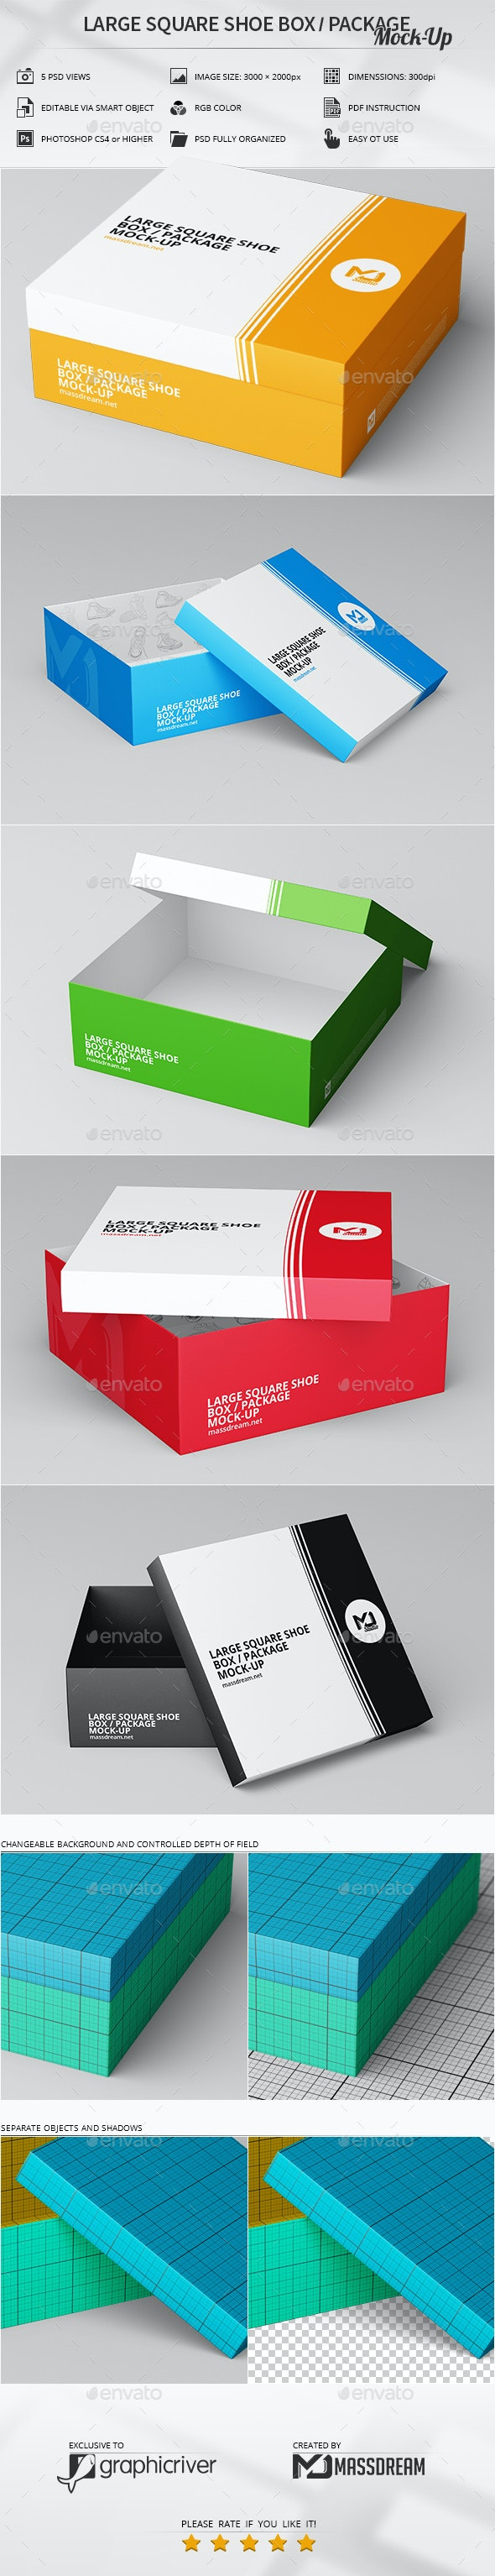 Large Square Shoe Box / Package Mock-Up - Product Mock-Ups Graphics